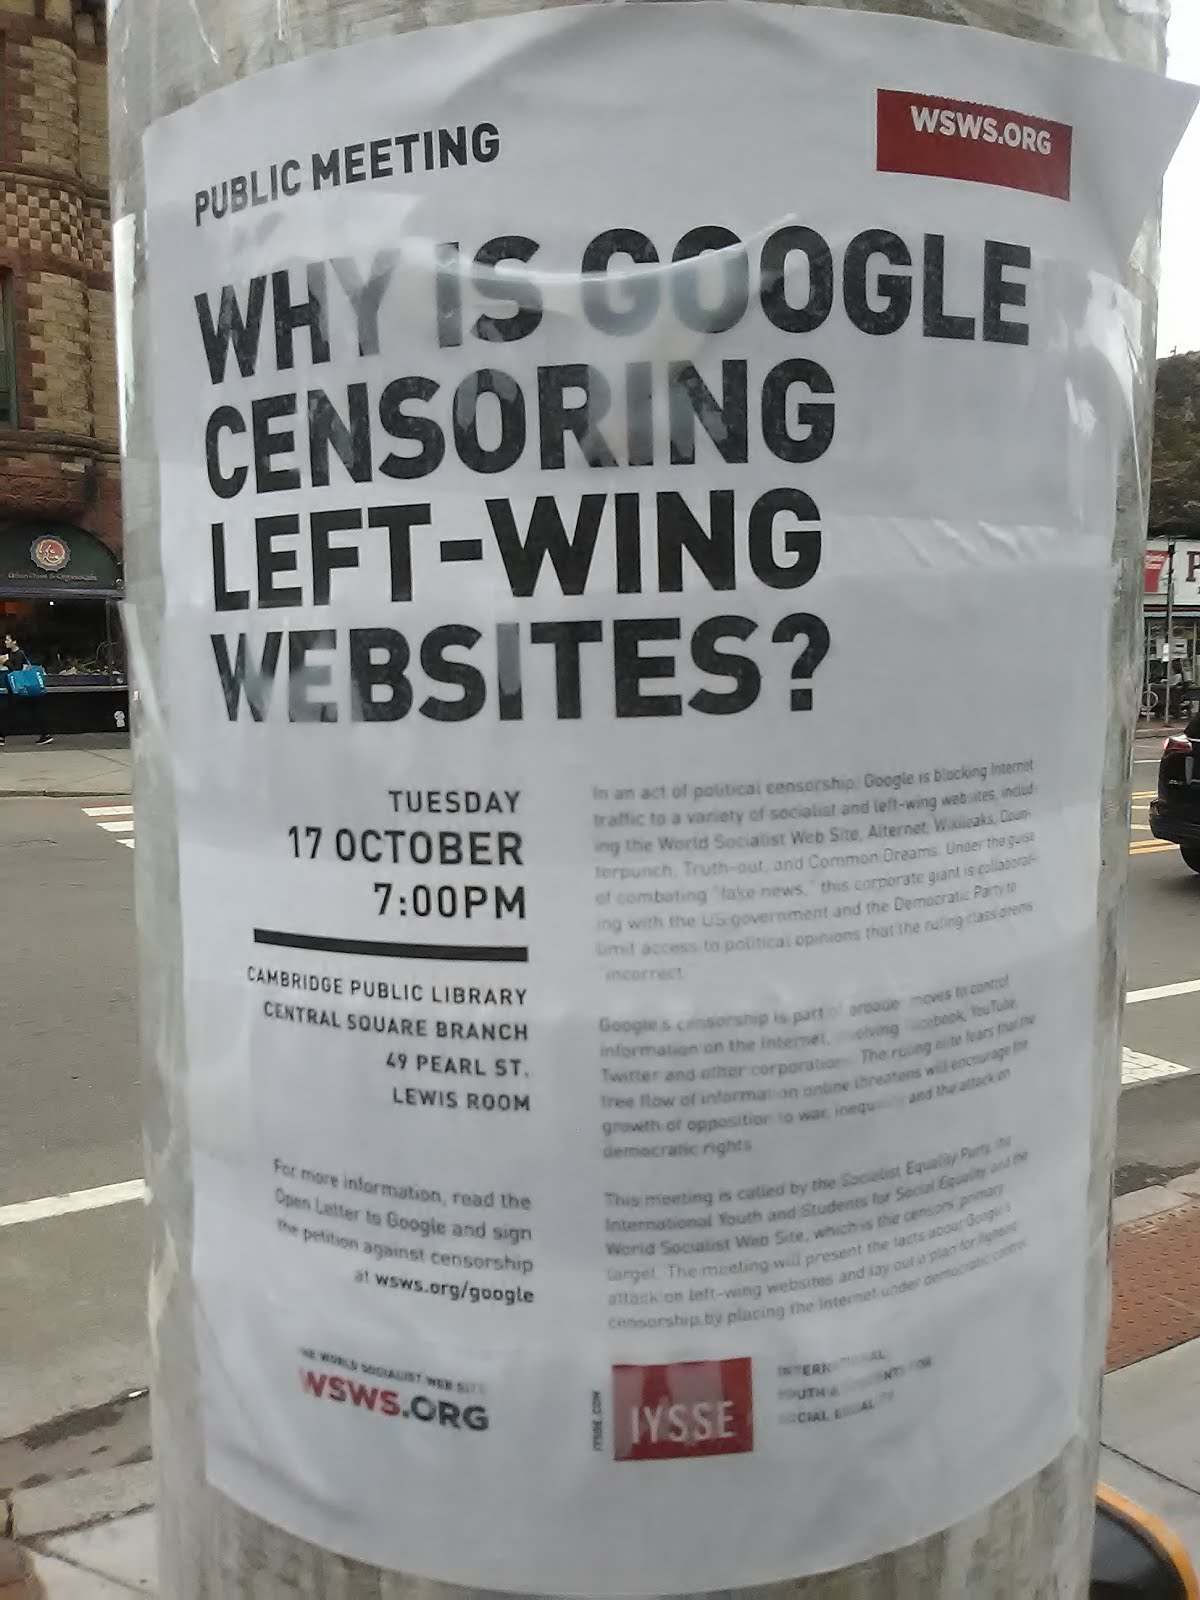 google censoring leftist websites